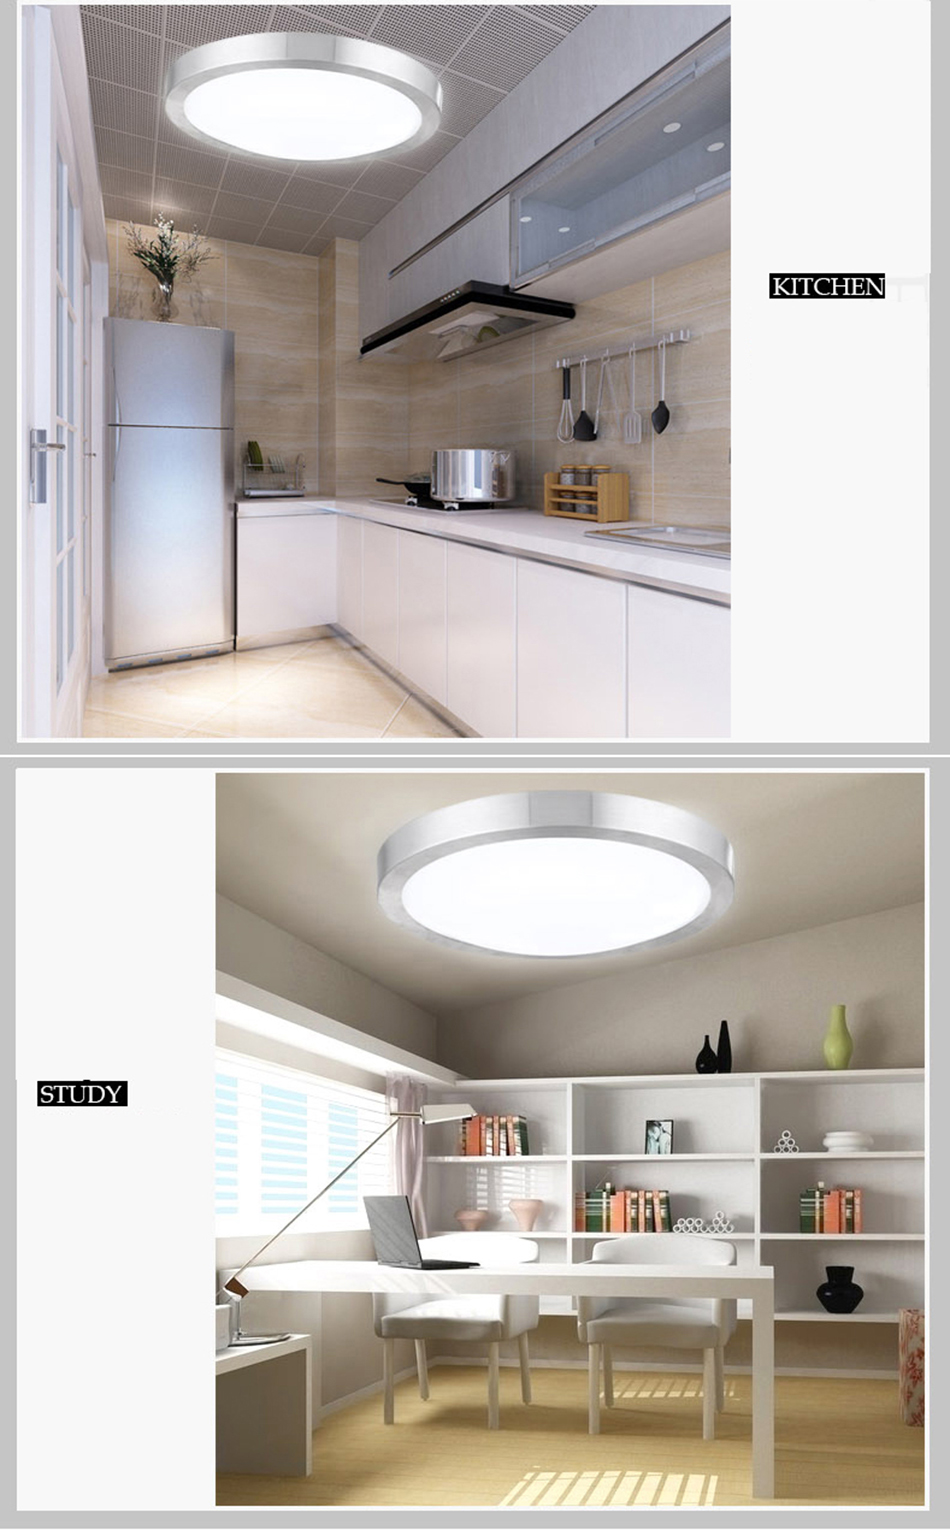 1 5x rund 12w led deckenlampe deckenleuchte badleuchte wandlampe k chen licht ebay. Black Bedroom Furniture Sets. Home Design Ideas